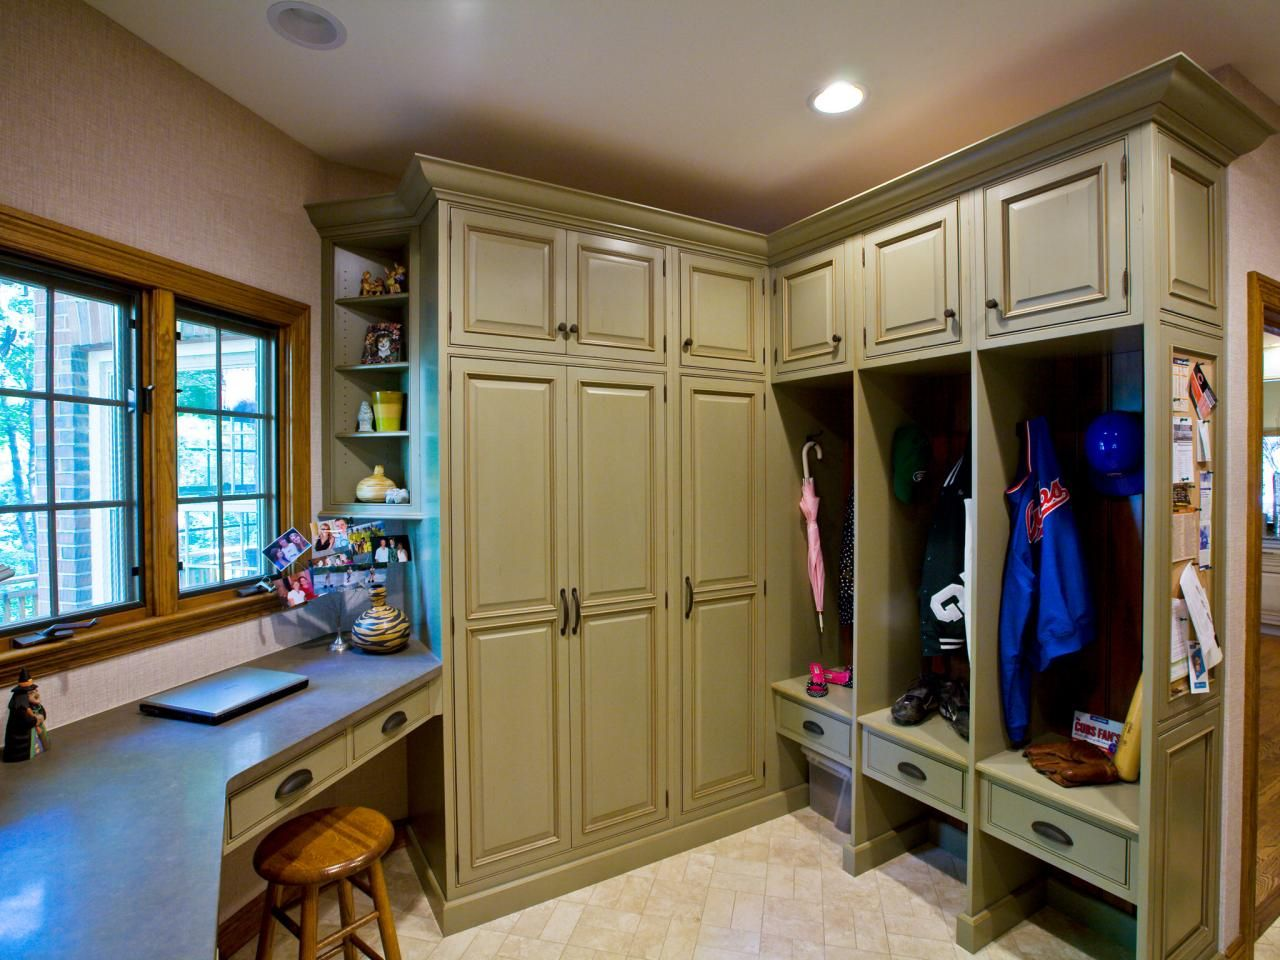 Mudroom Design Ideas: Pictures, Options, Tips and Advice | Mudroom ...